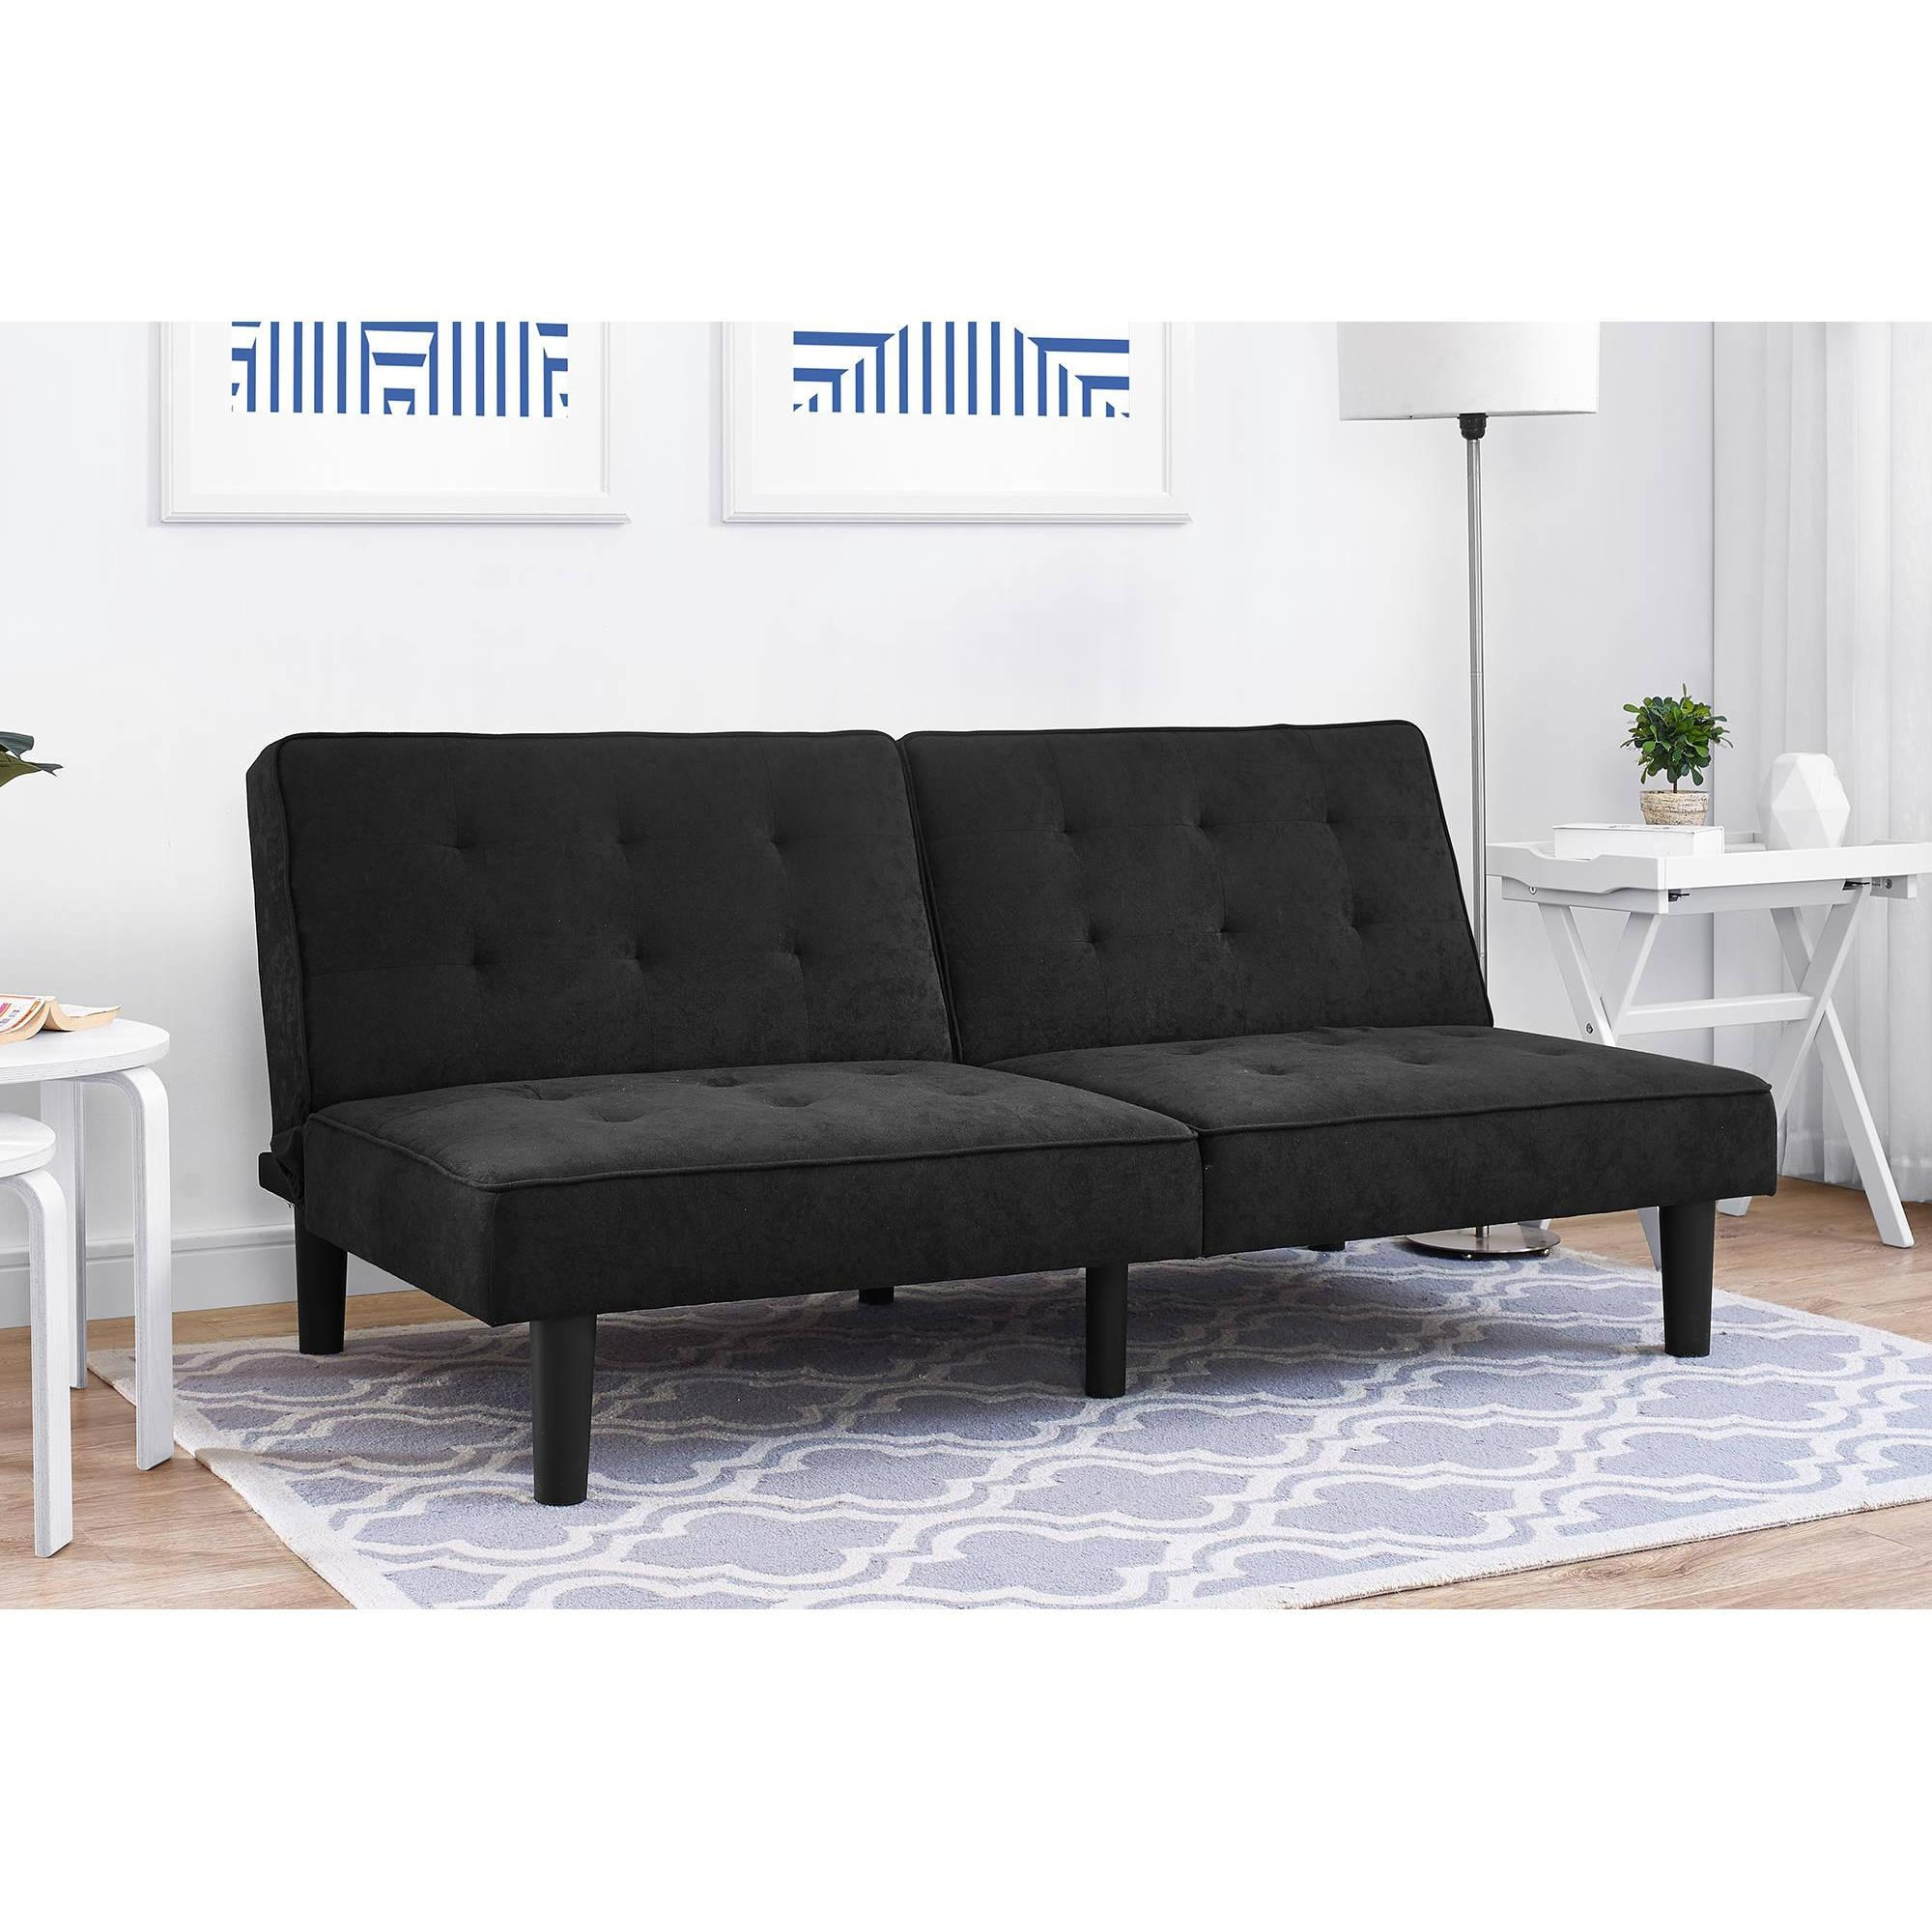 Mainstays Arlo Futon, Multiple Colors – Walmart With Mainstay Sofas (Image 9 of 20)